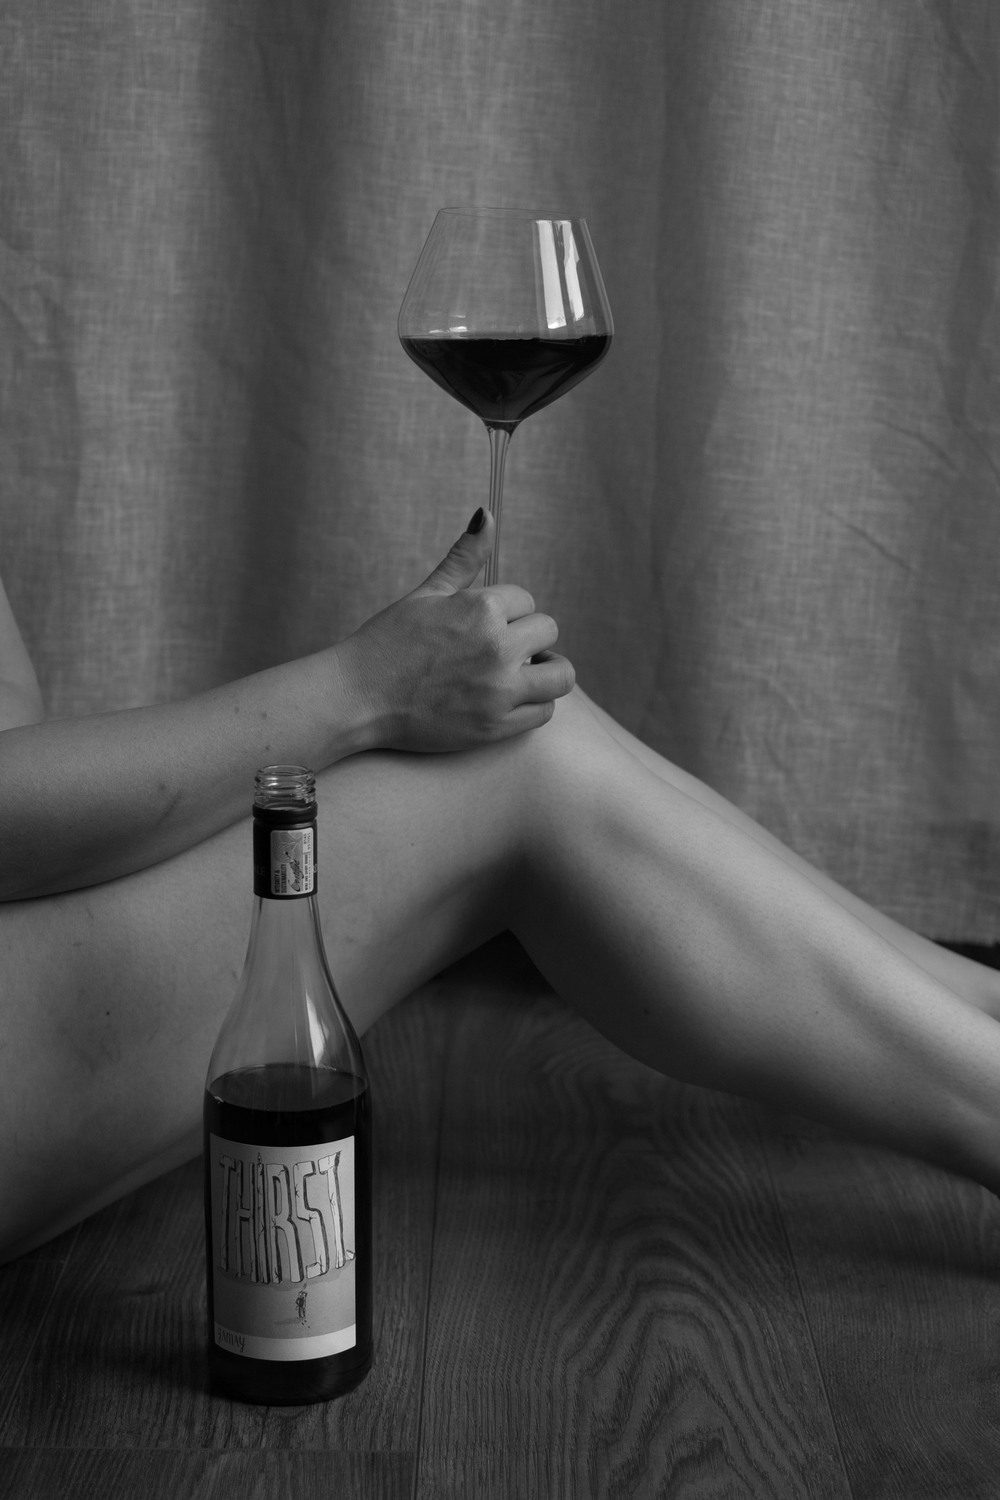 Radford-Dale-Thirst-Gamay-Review-by-Bottle-Bitches.png